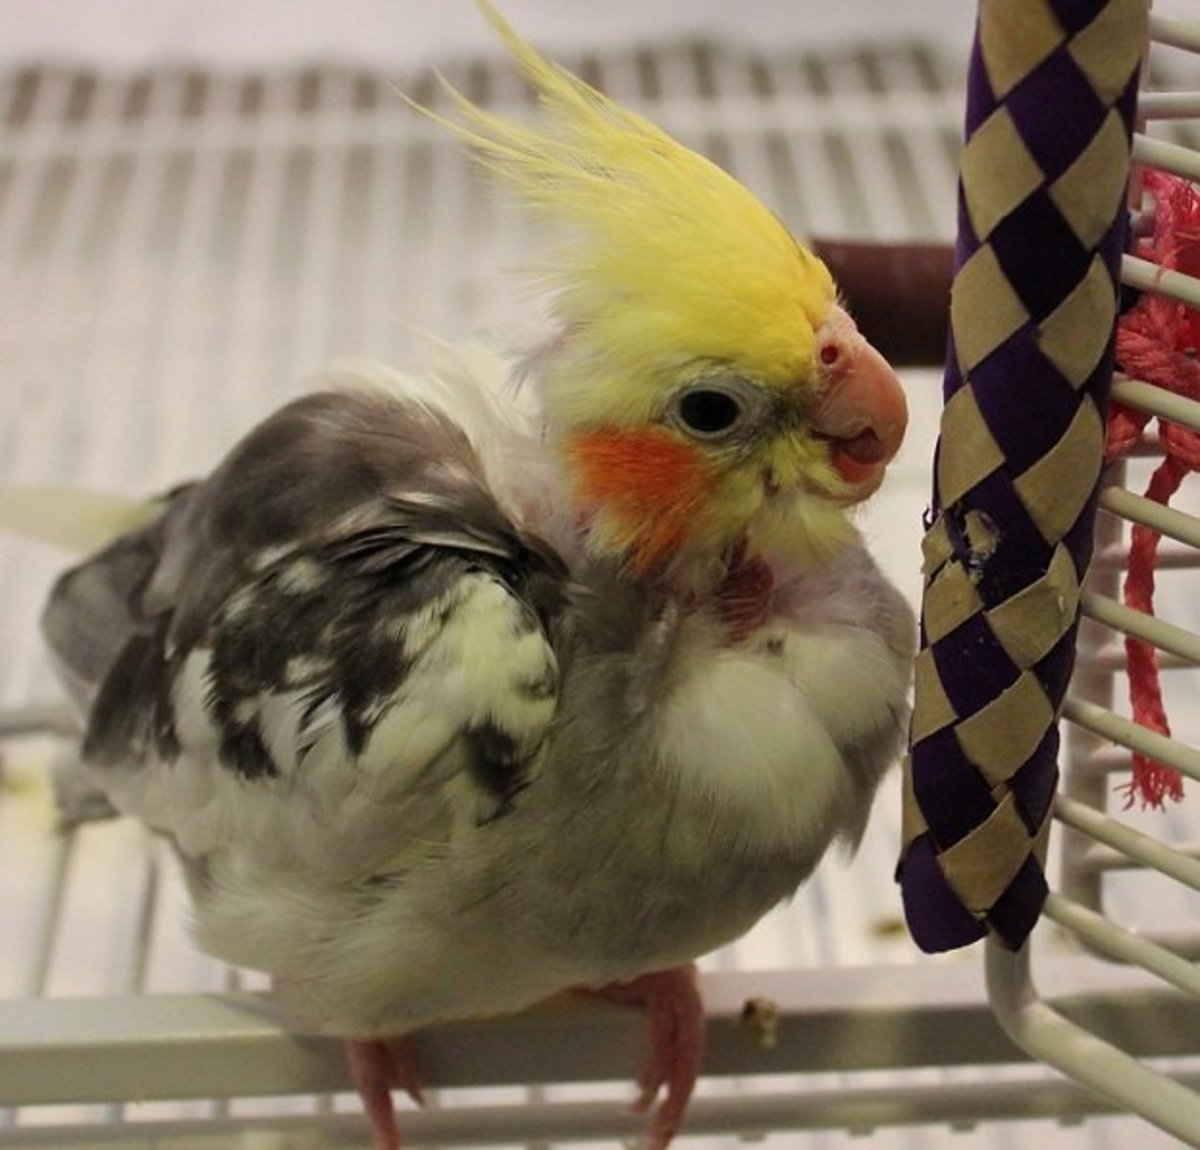 The Ethics of Keeping Pet Birds: Is It Cruel to Keep a Bird in a Cage?